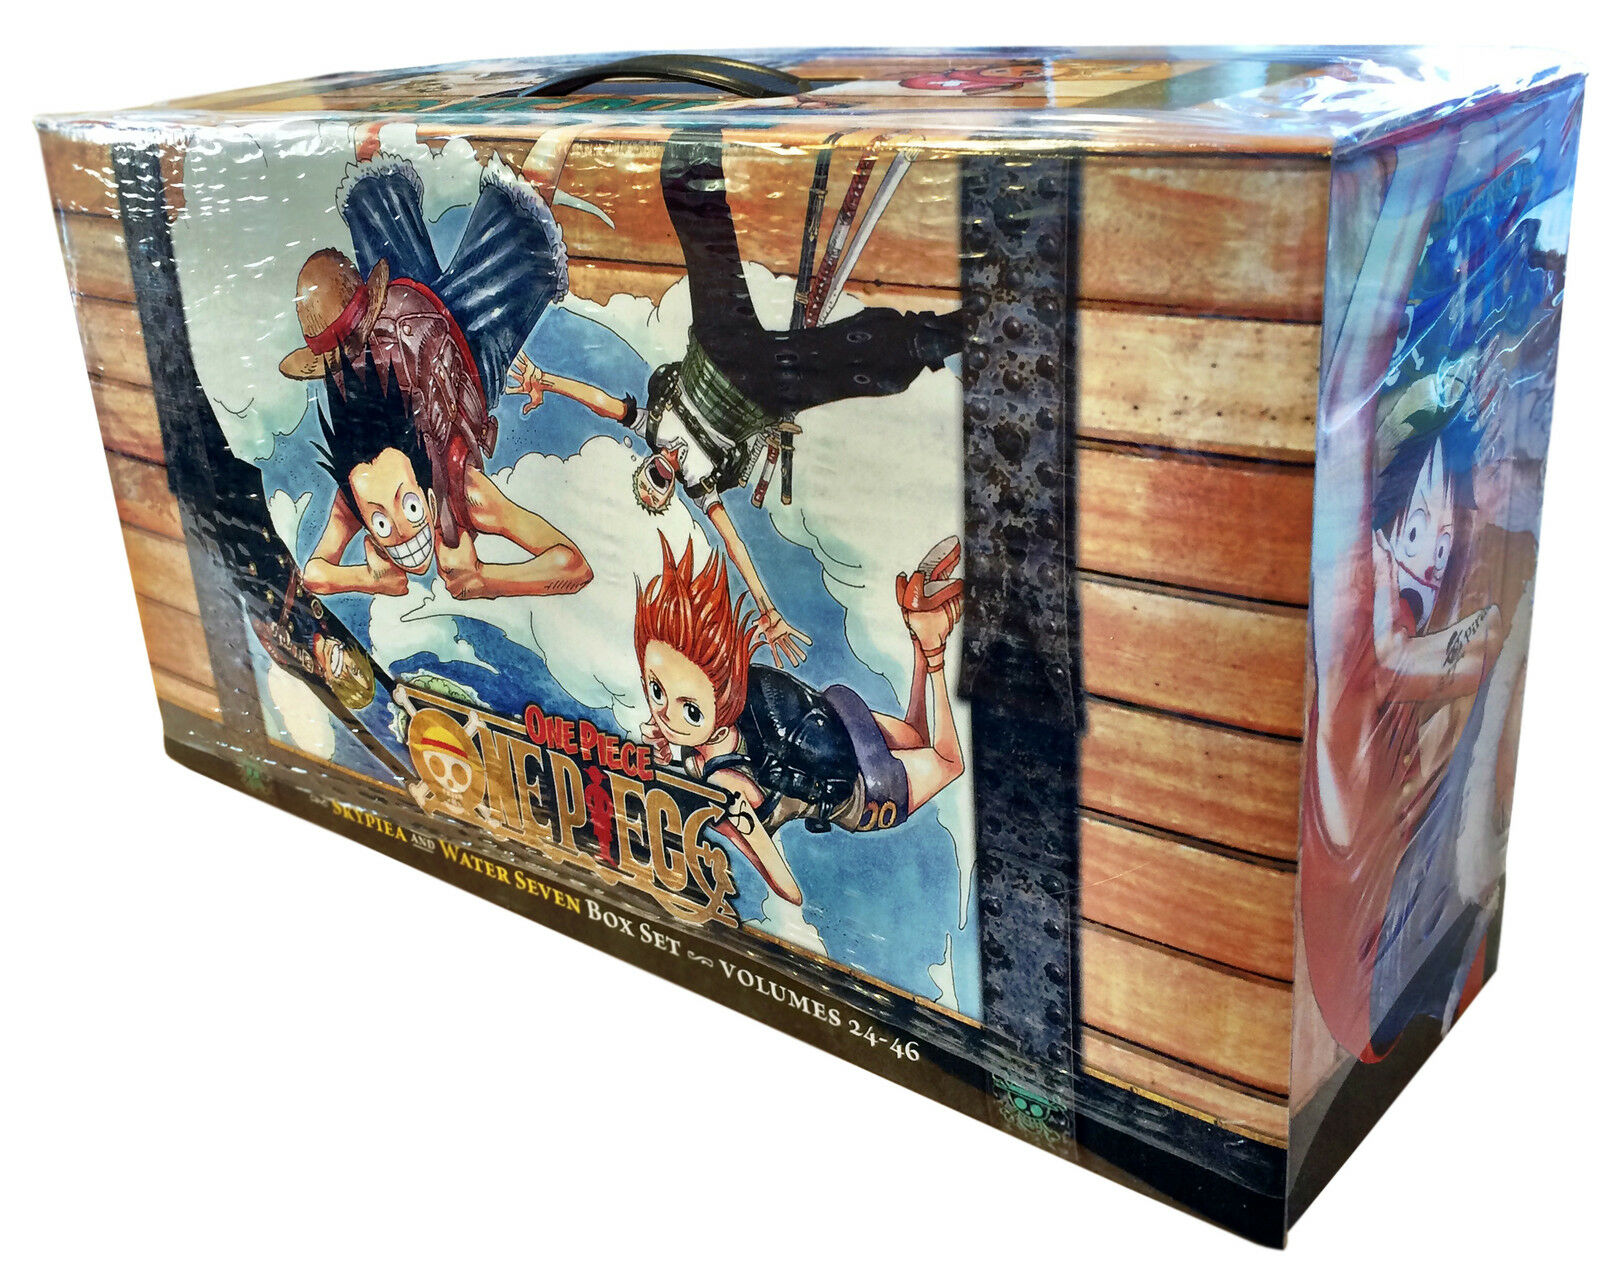 One Piece The Complete Collection Box Set 24-46 ...